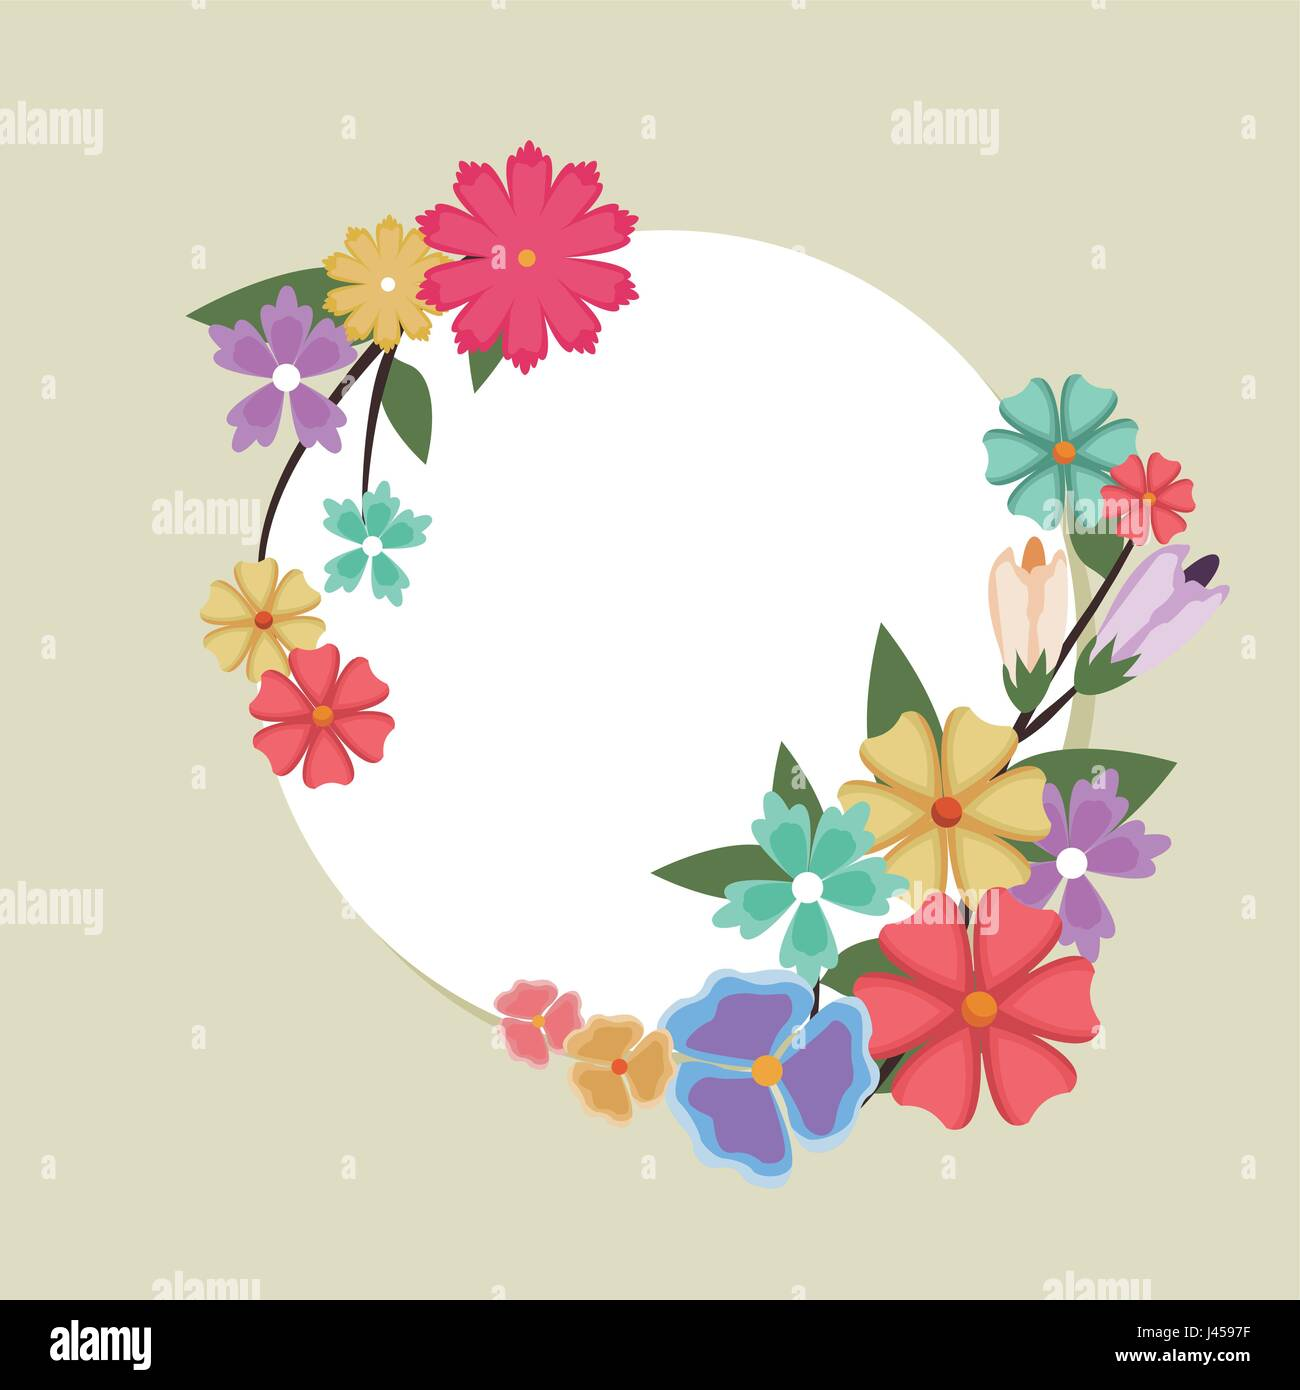 Beautiful Round Spring Flower Frame Banner With Natural Border